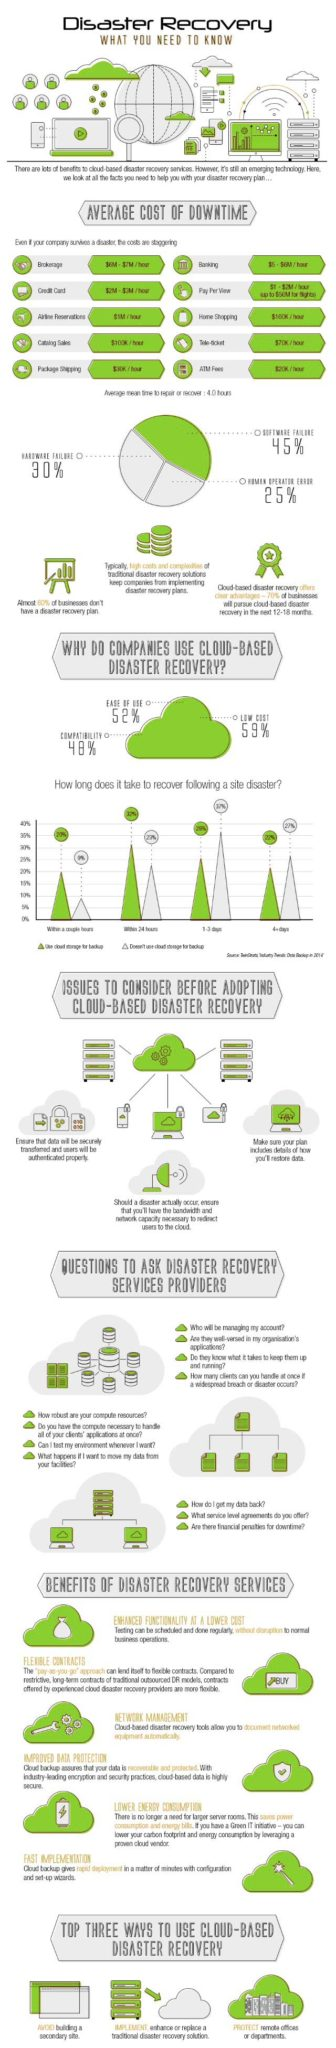 core-data-cloud-data-recovery-benefits